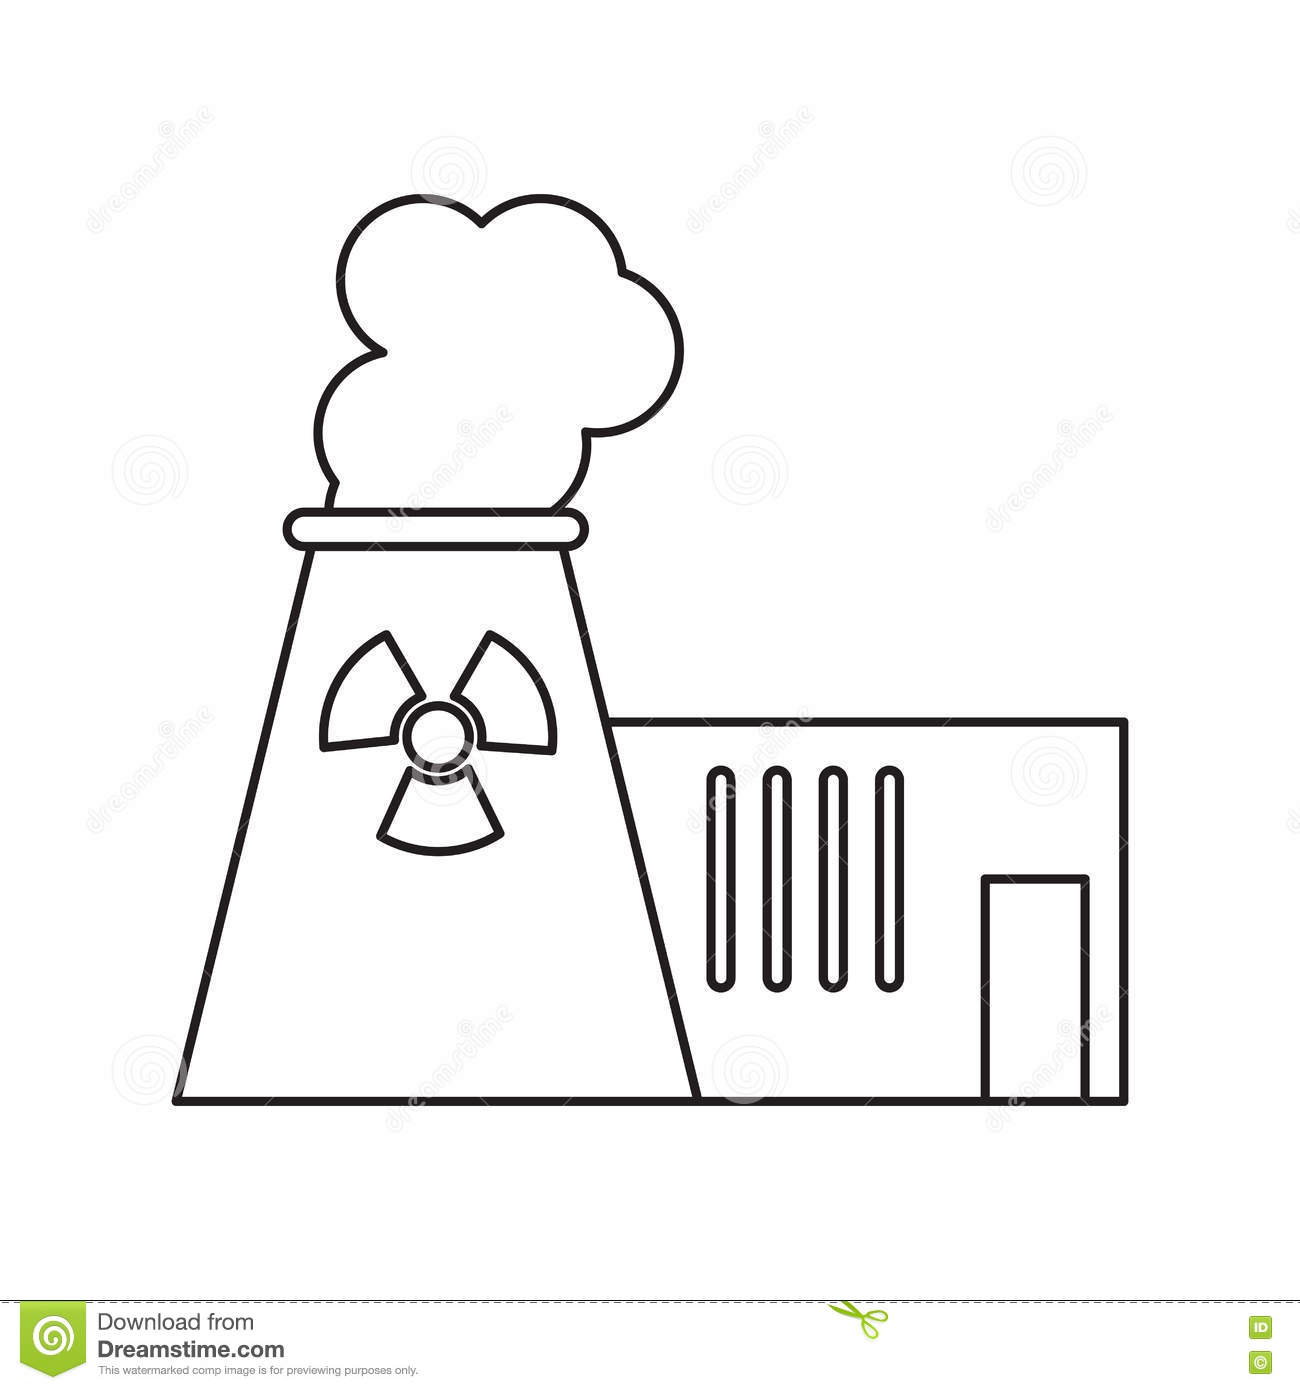 Pictograh Nuclear Power Plant Tower Energy Stock Vector Line Diagram Download Illustration Of Isolated Dirty